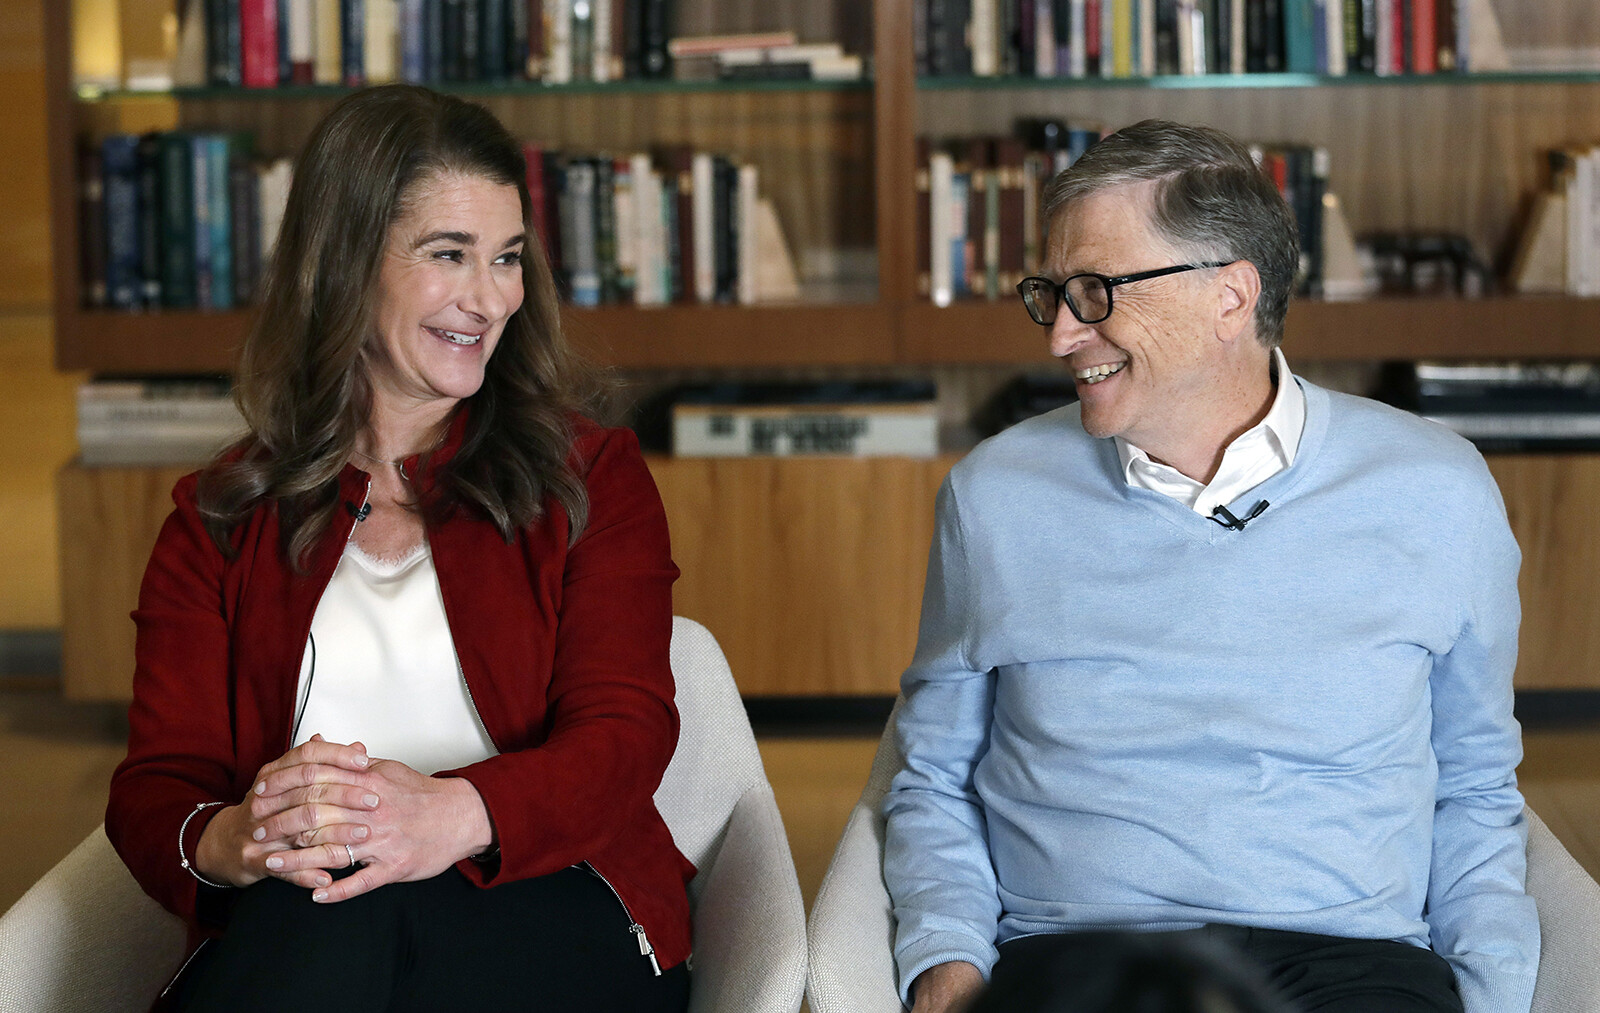 The Gates Foundation has a plan for when Bill and Melinda realize working with your ex sucks